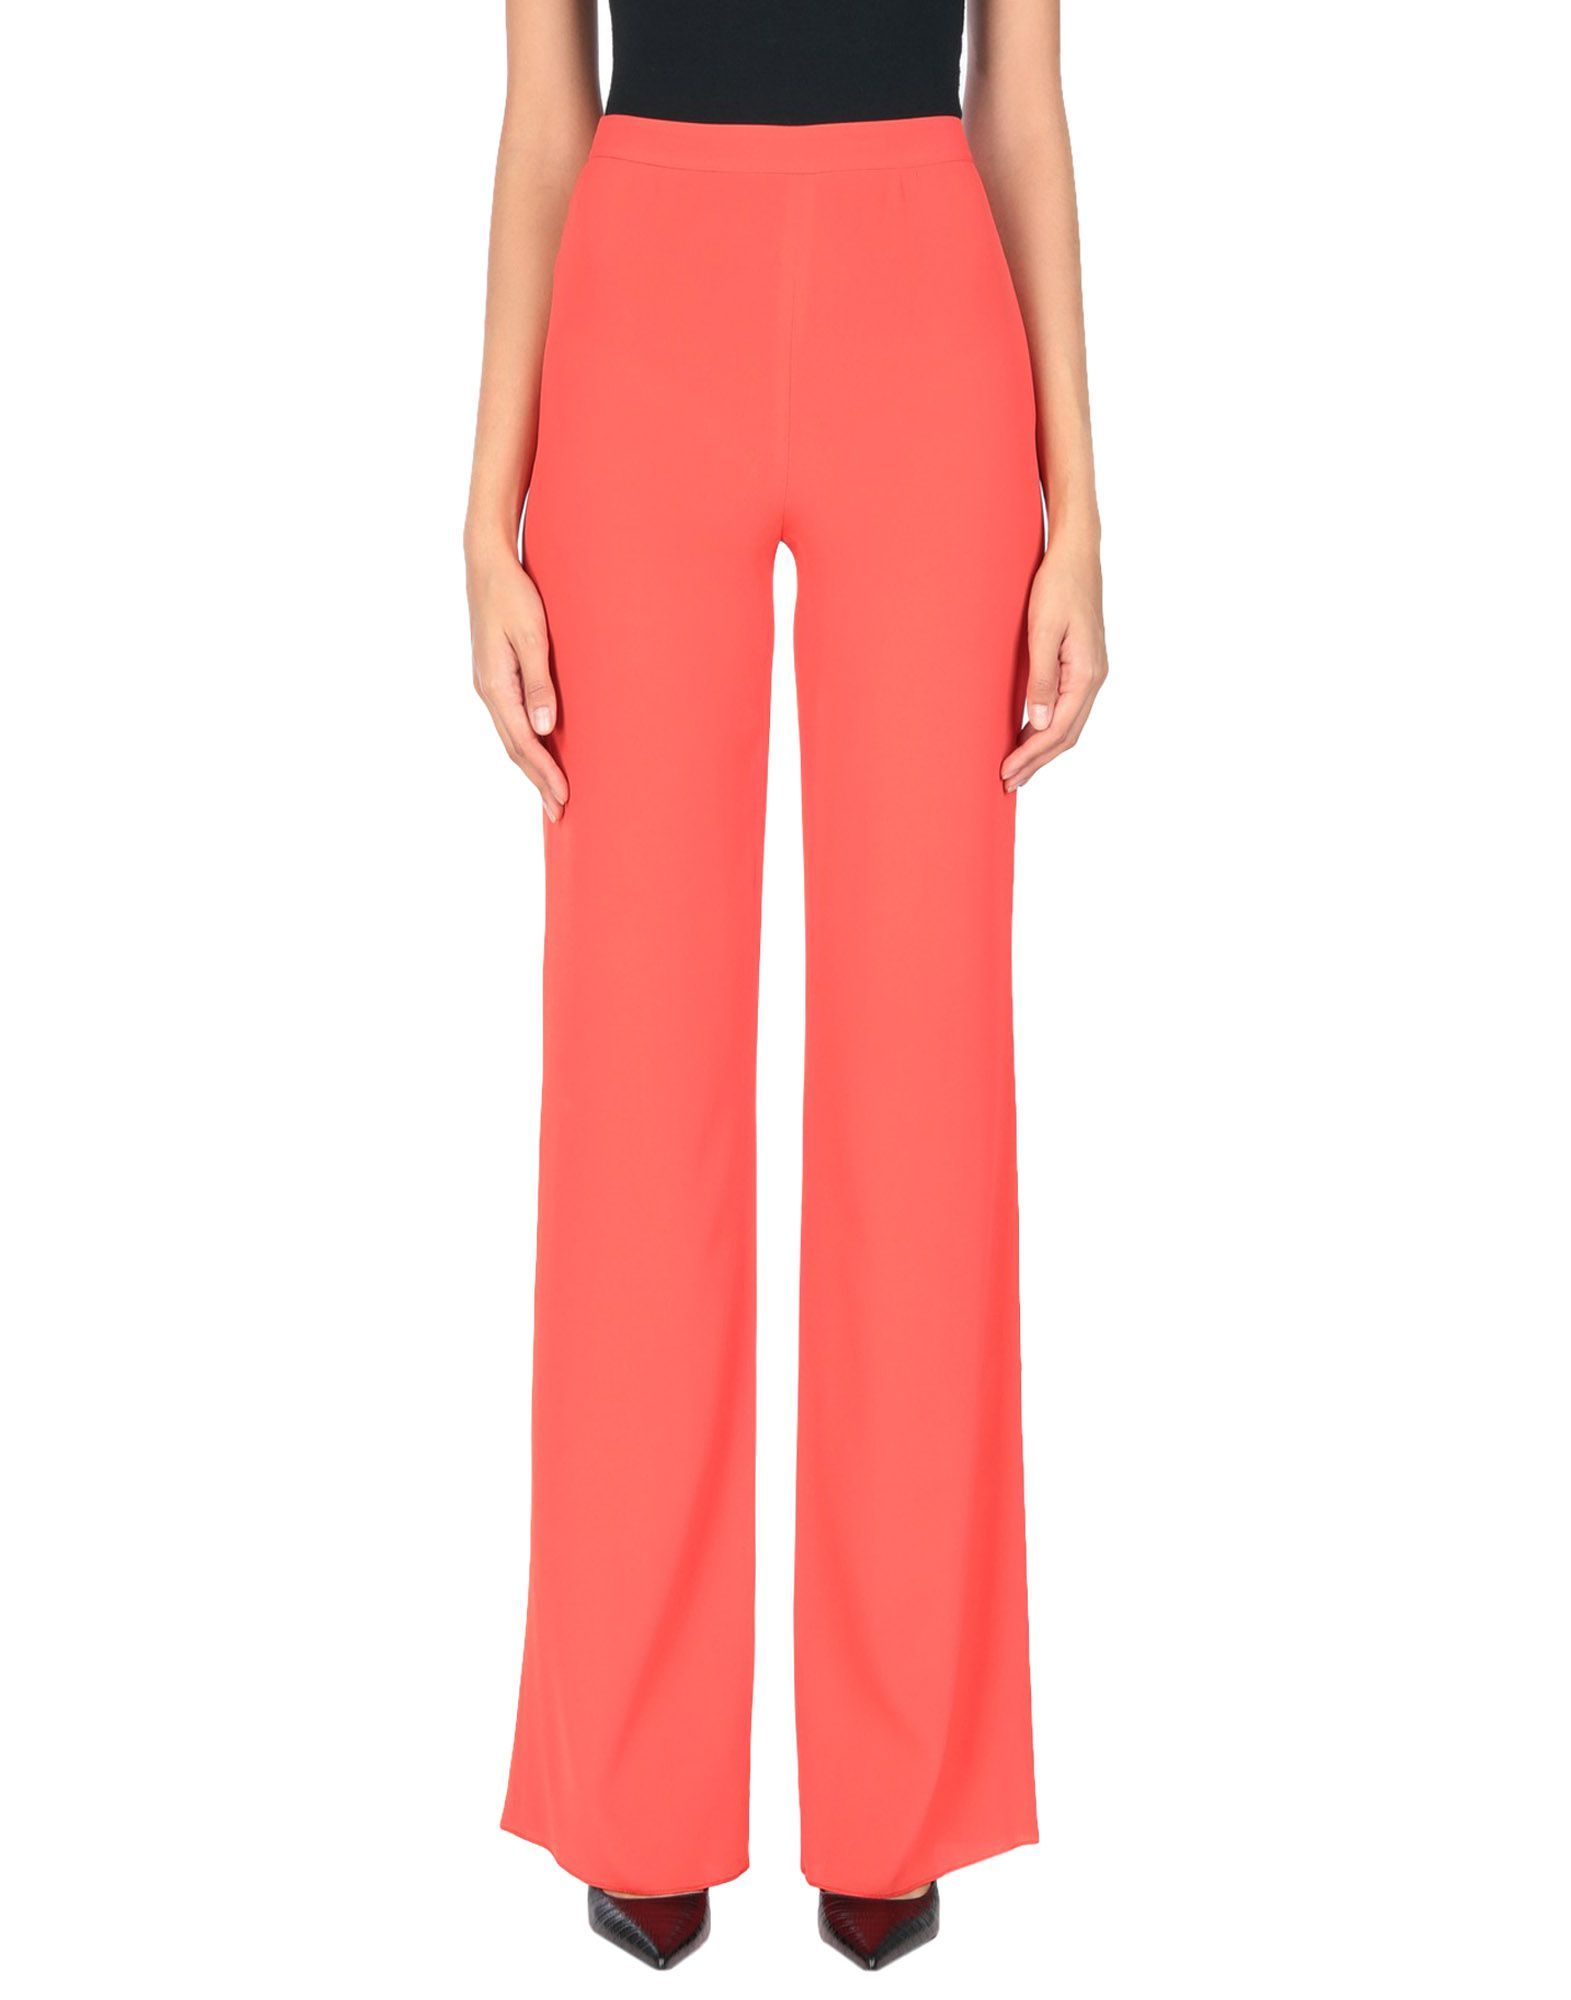 Emilio Pucci Red Crepe Tailored Trousers